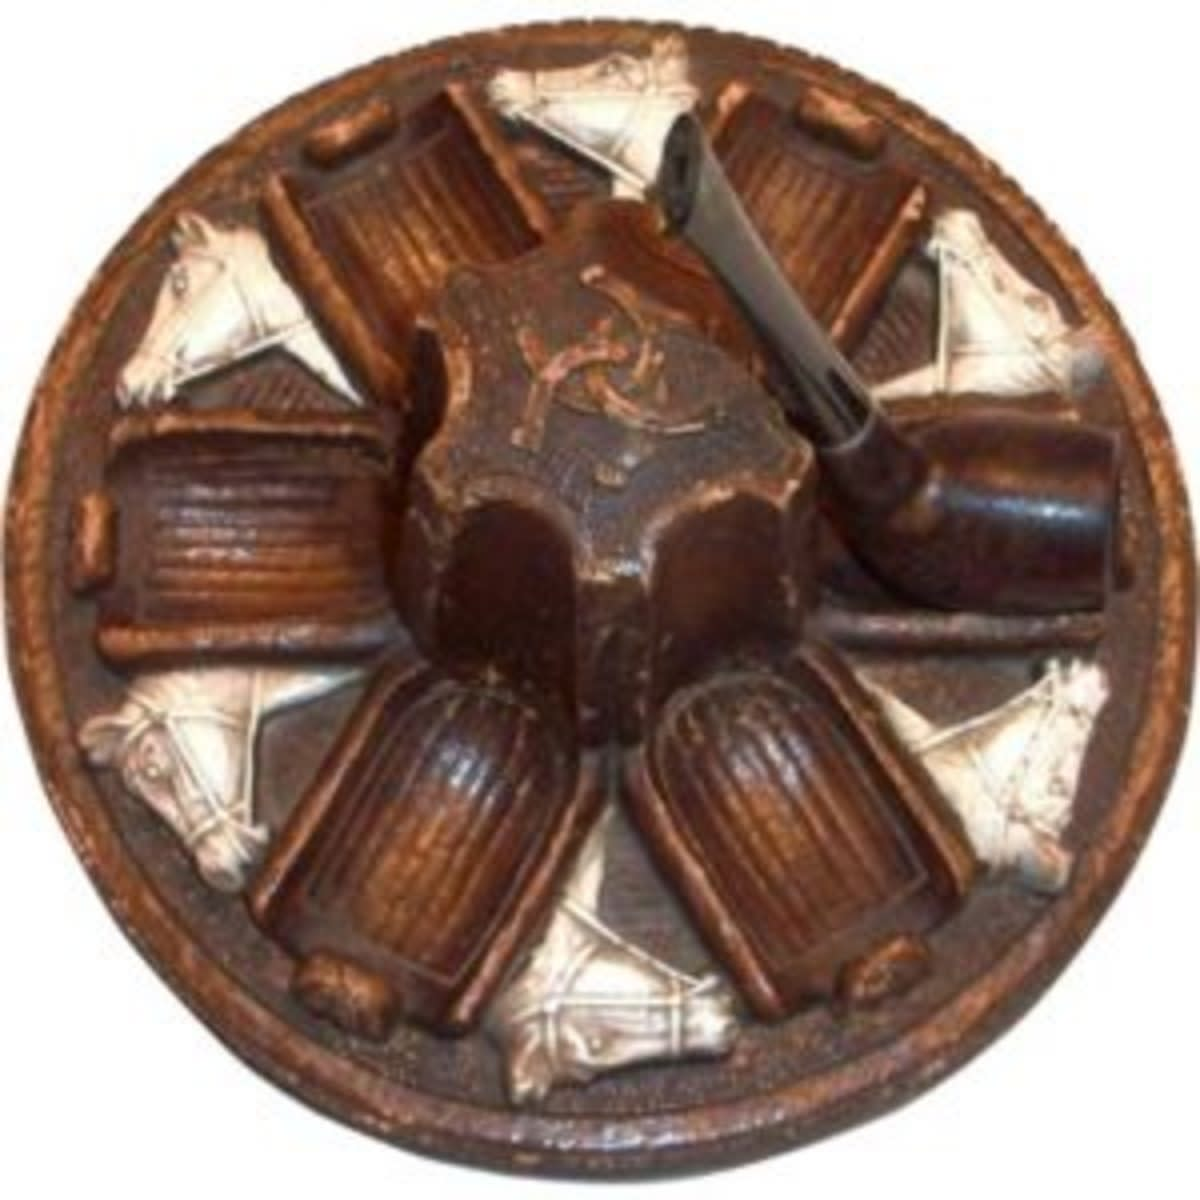 This vintage Syroco pipe holder holds up to six pipes and sold for $75.